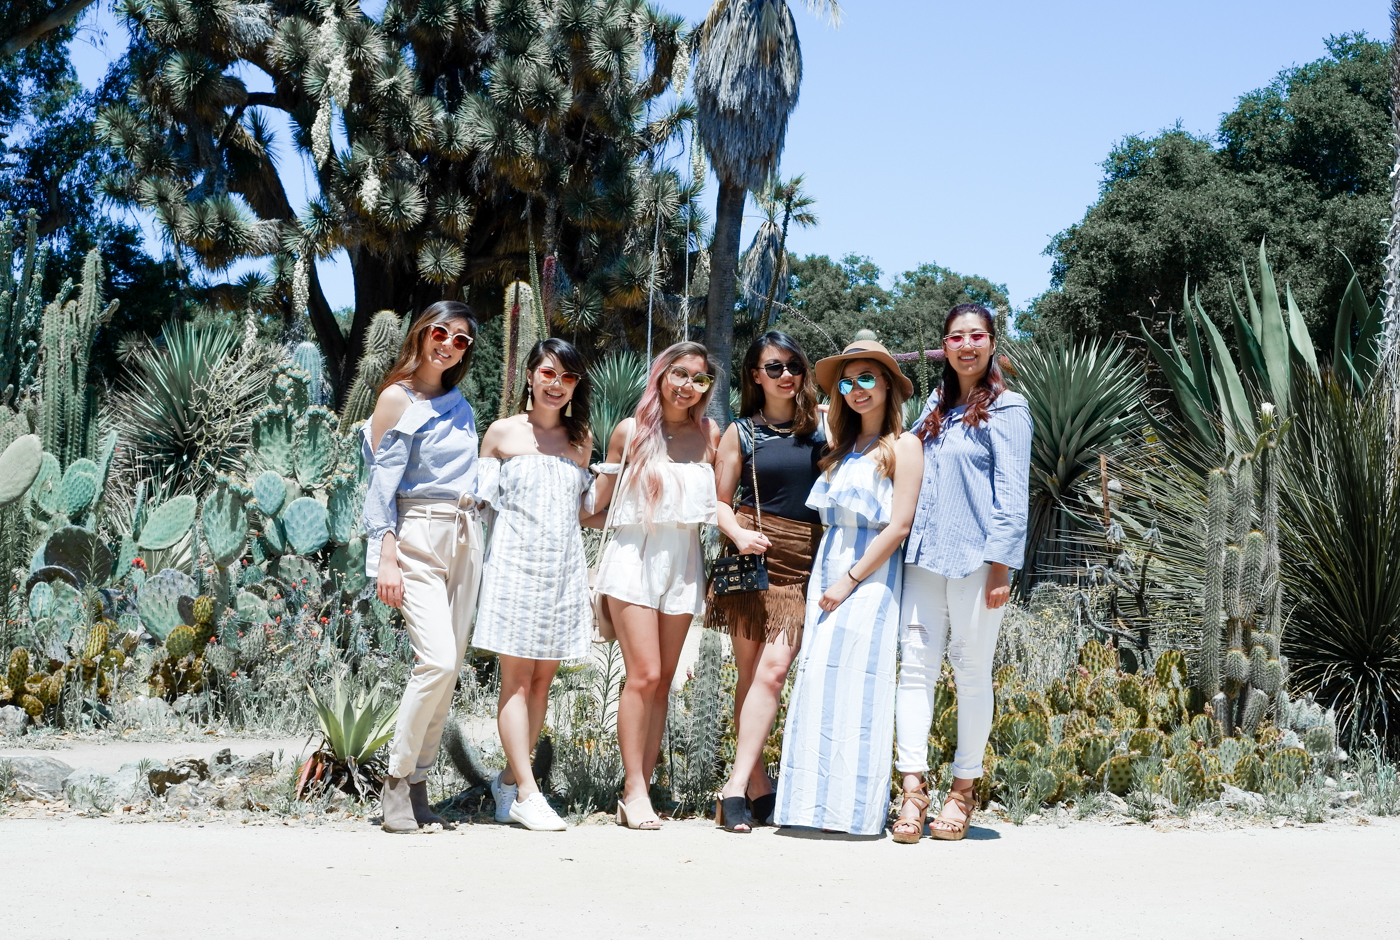 SF style bloggers | The Chic Diary